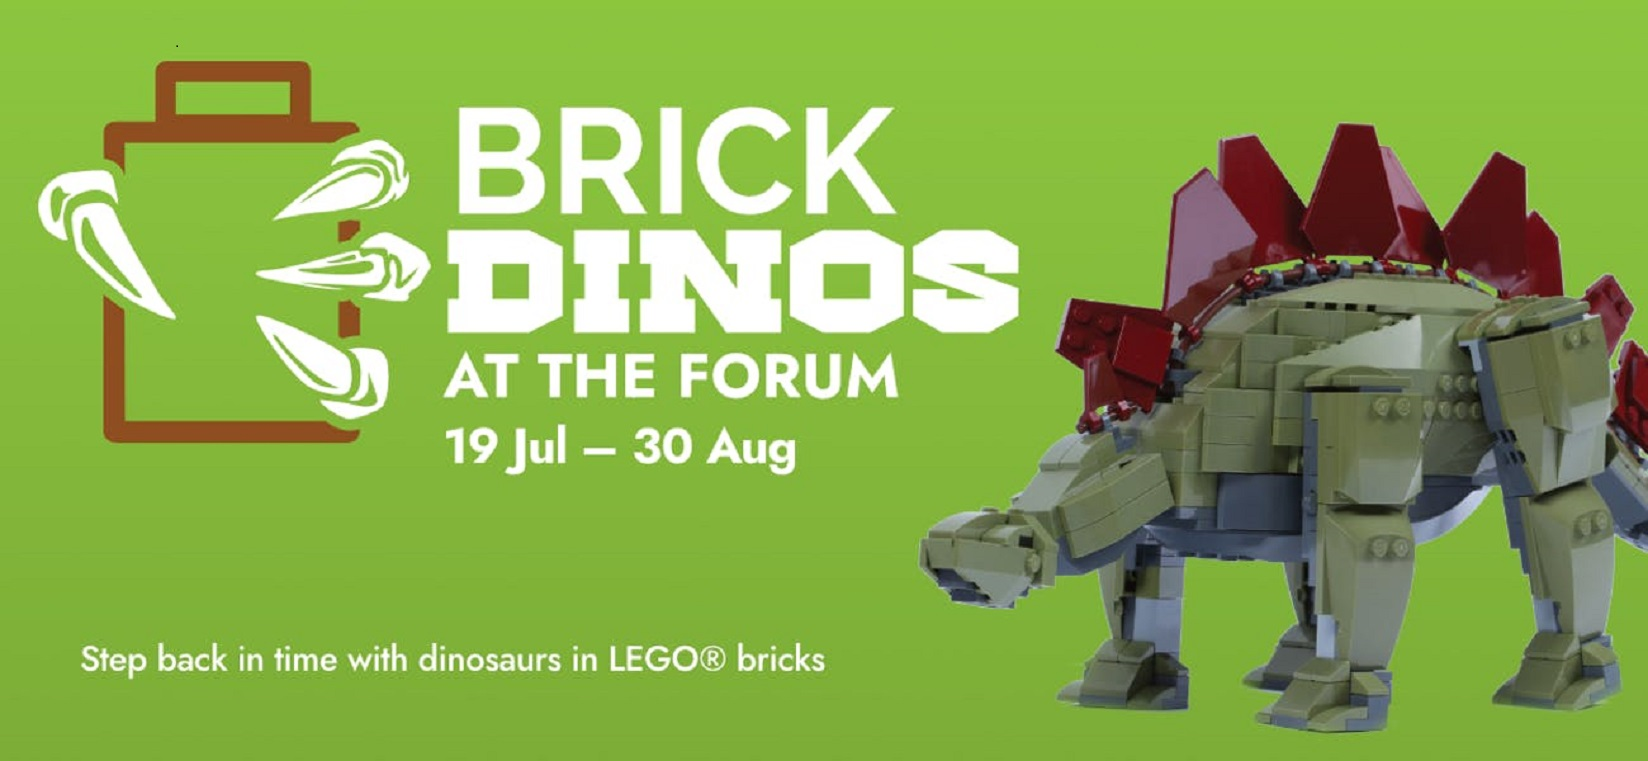 Brick Dinos at The Forum in Norwich.